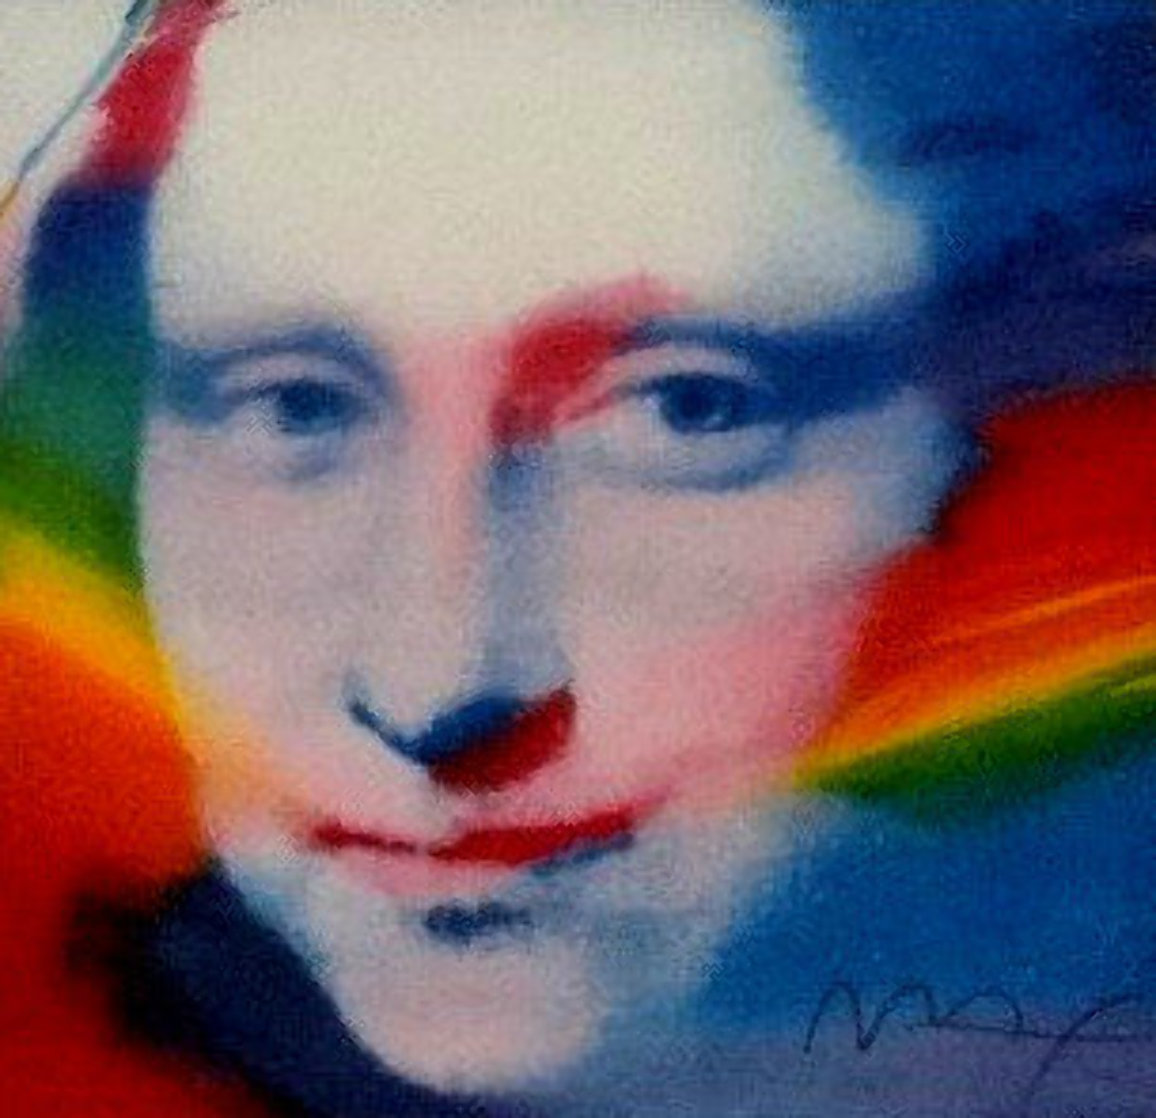 Mona Lisa: Retrospective IV Suite 1981 Limited Edition Print by Peter Max